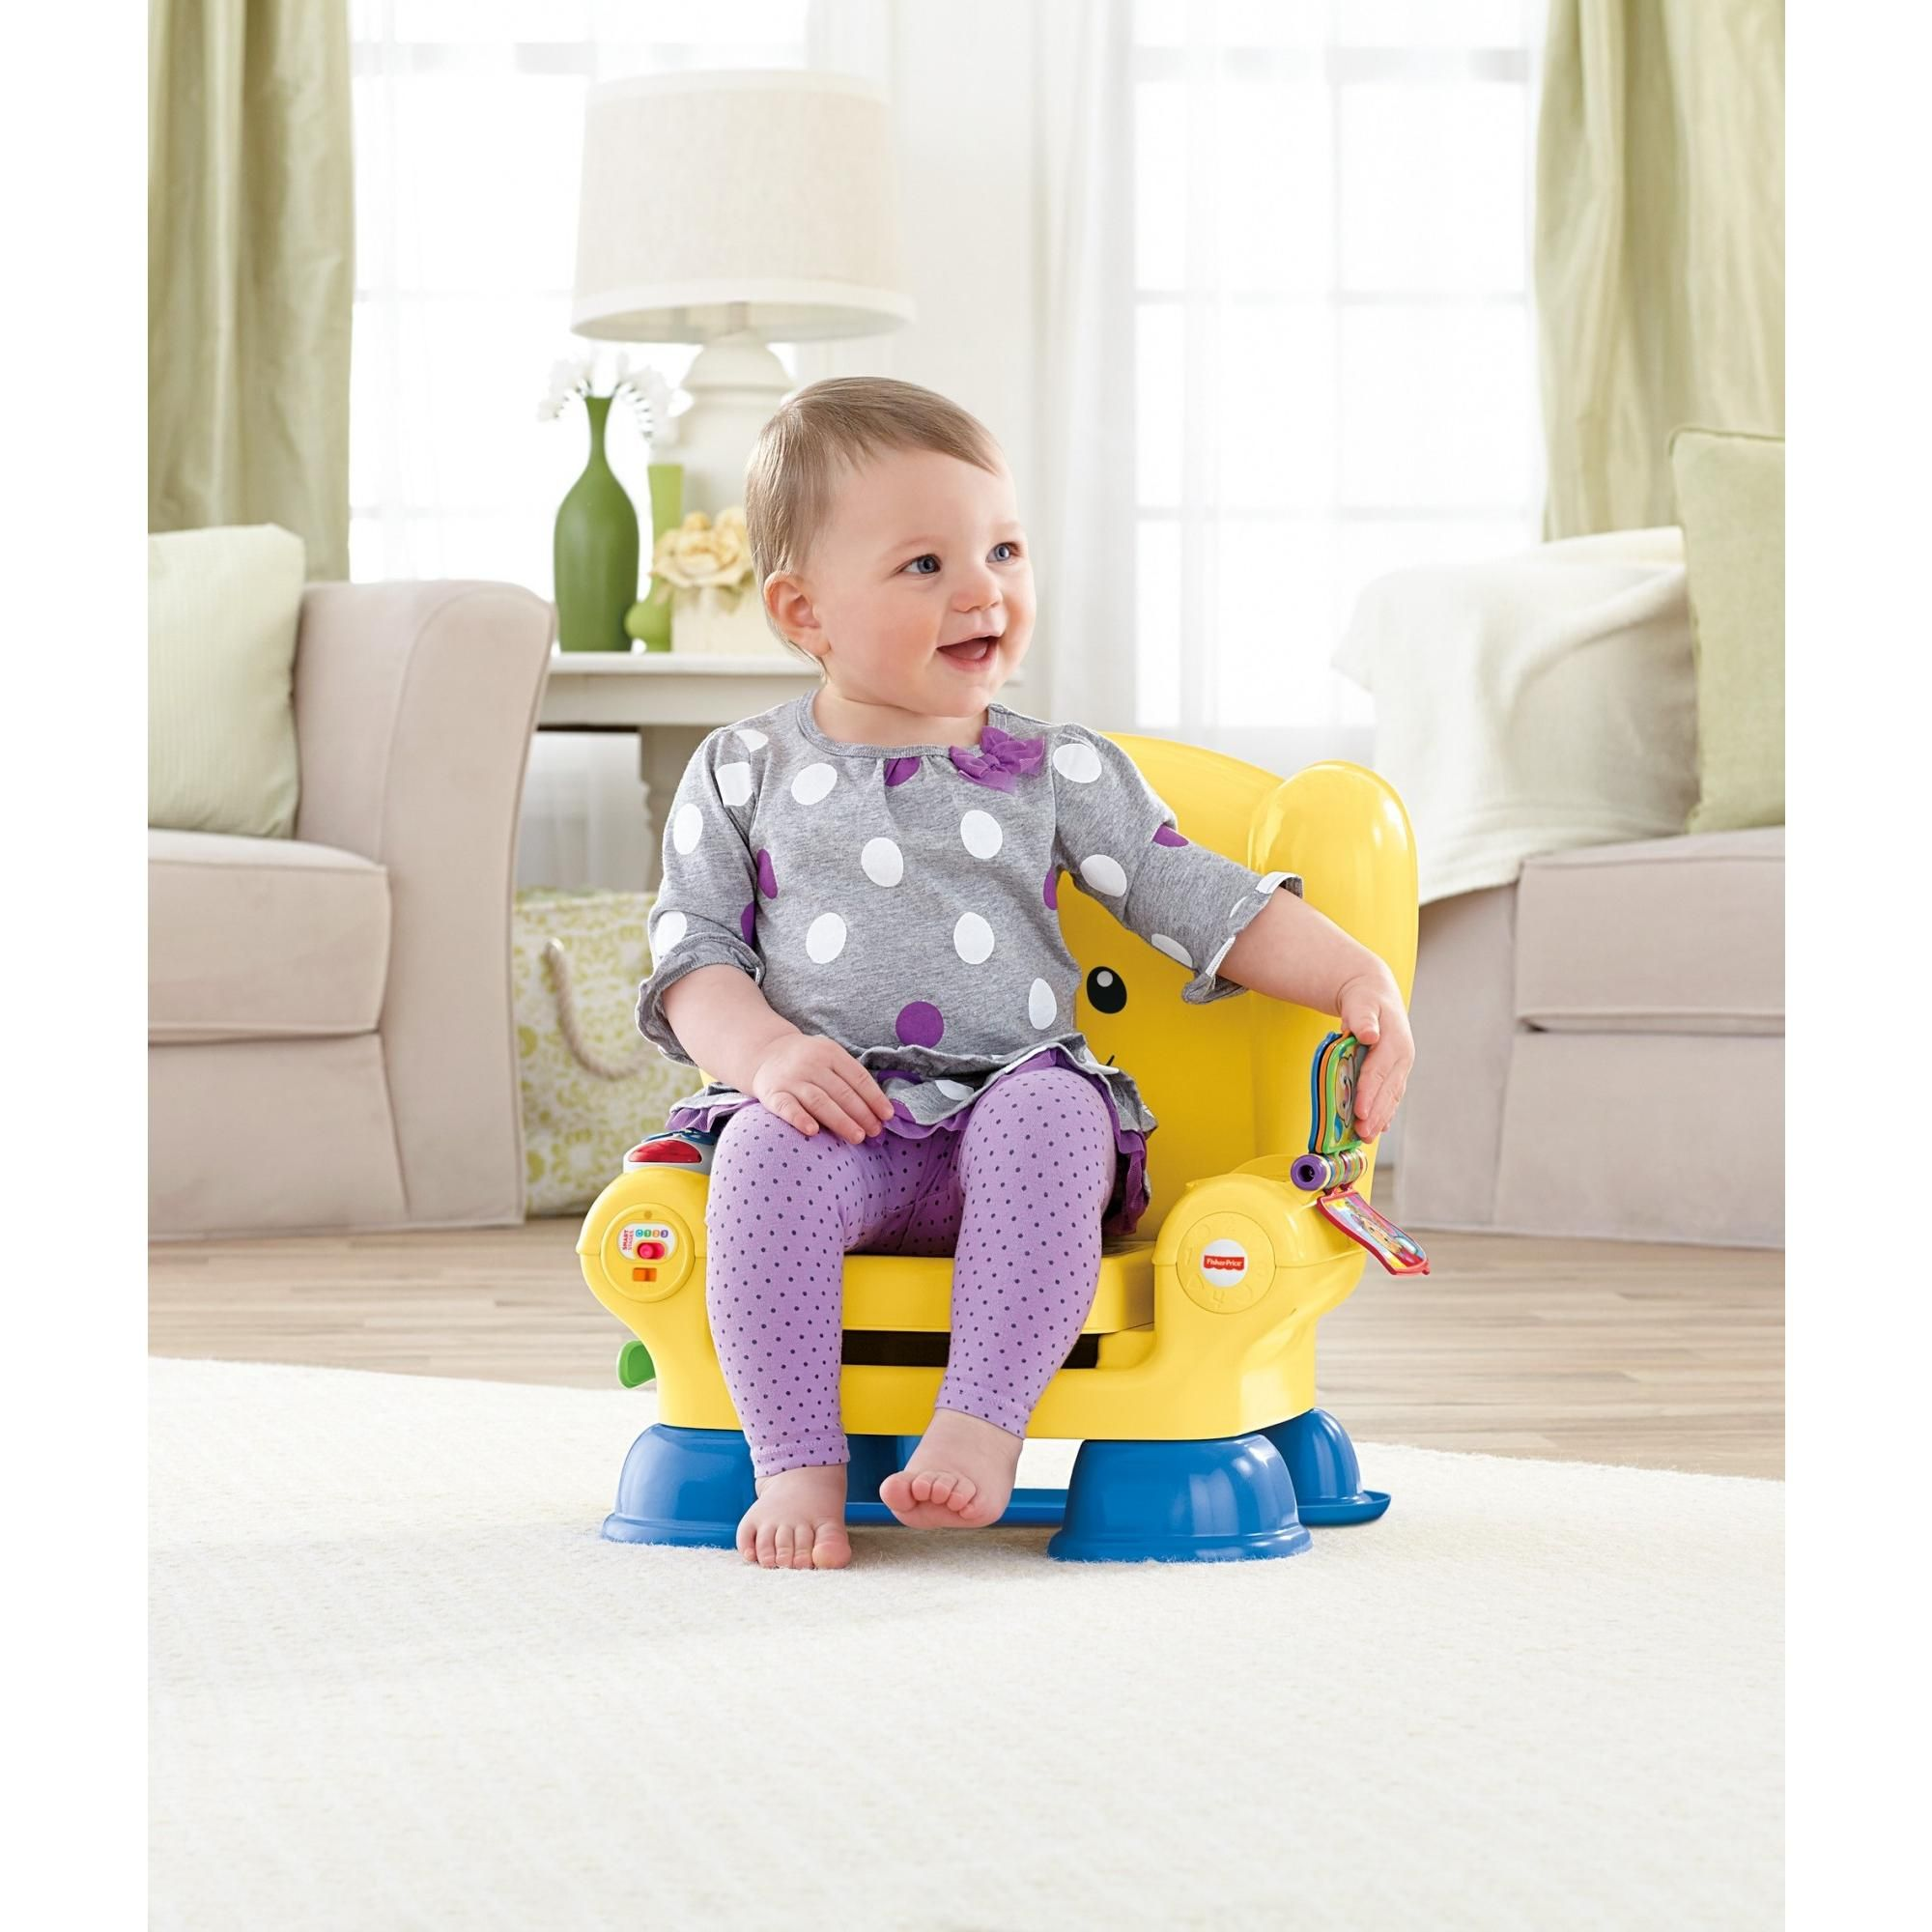 Fisherprice laugh learn smart stages chair yellow abc